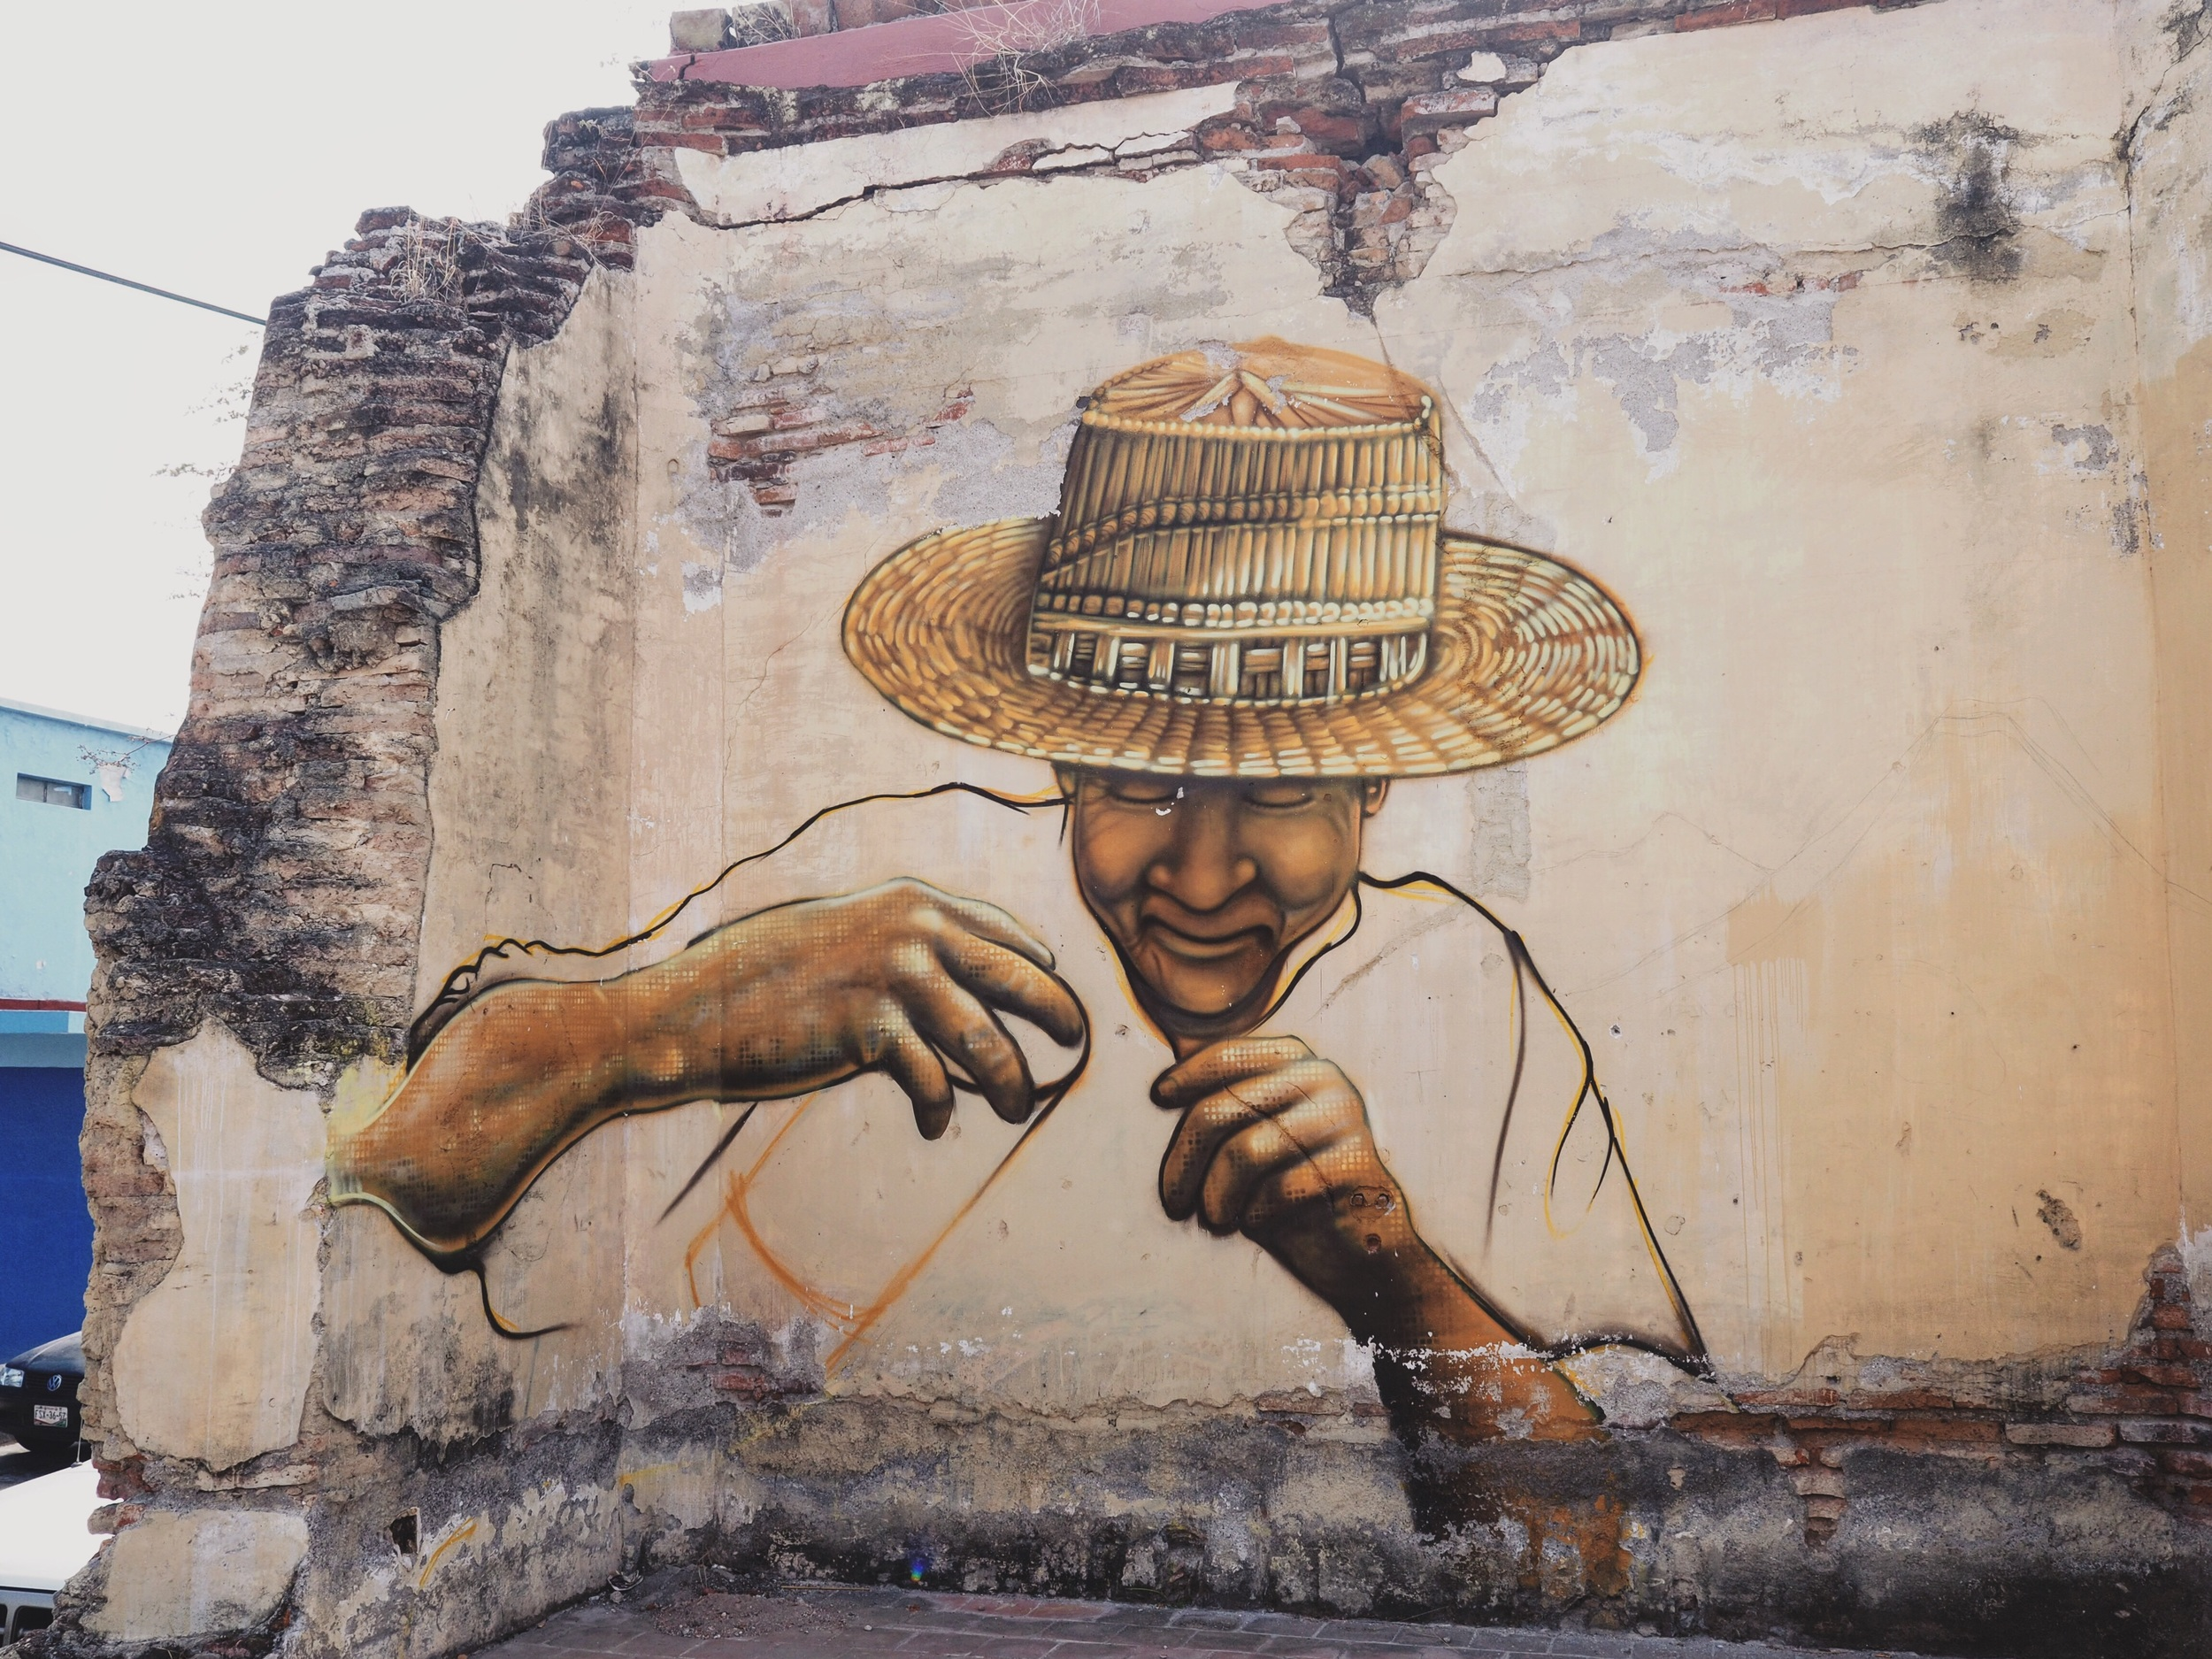 Allusions to history in street art